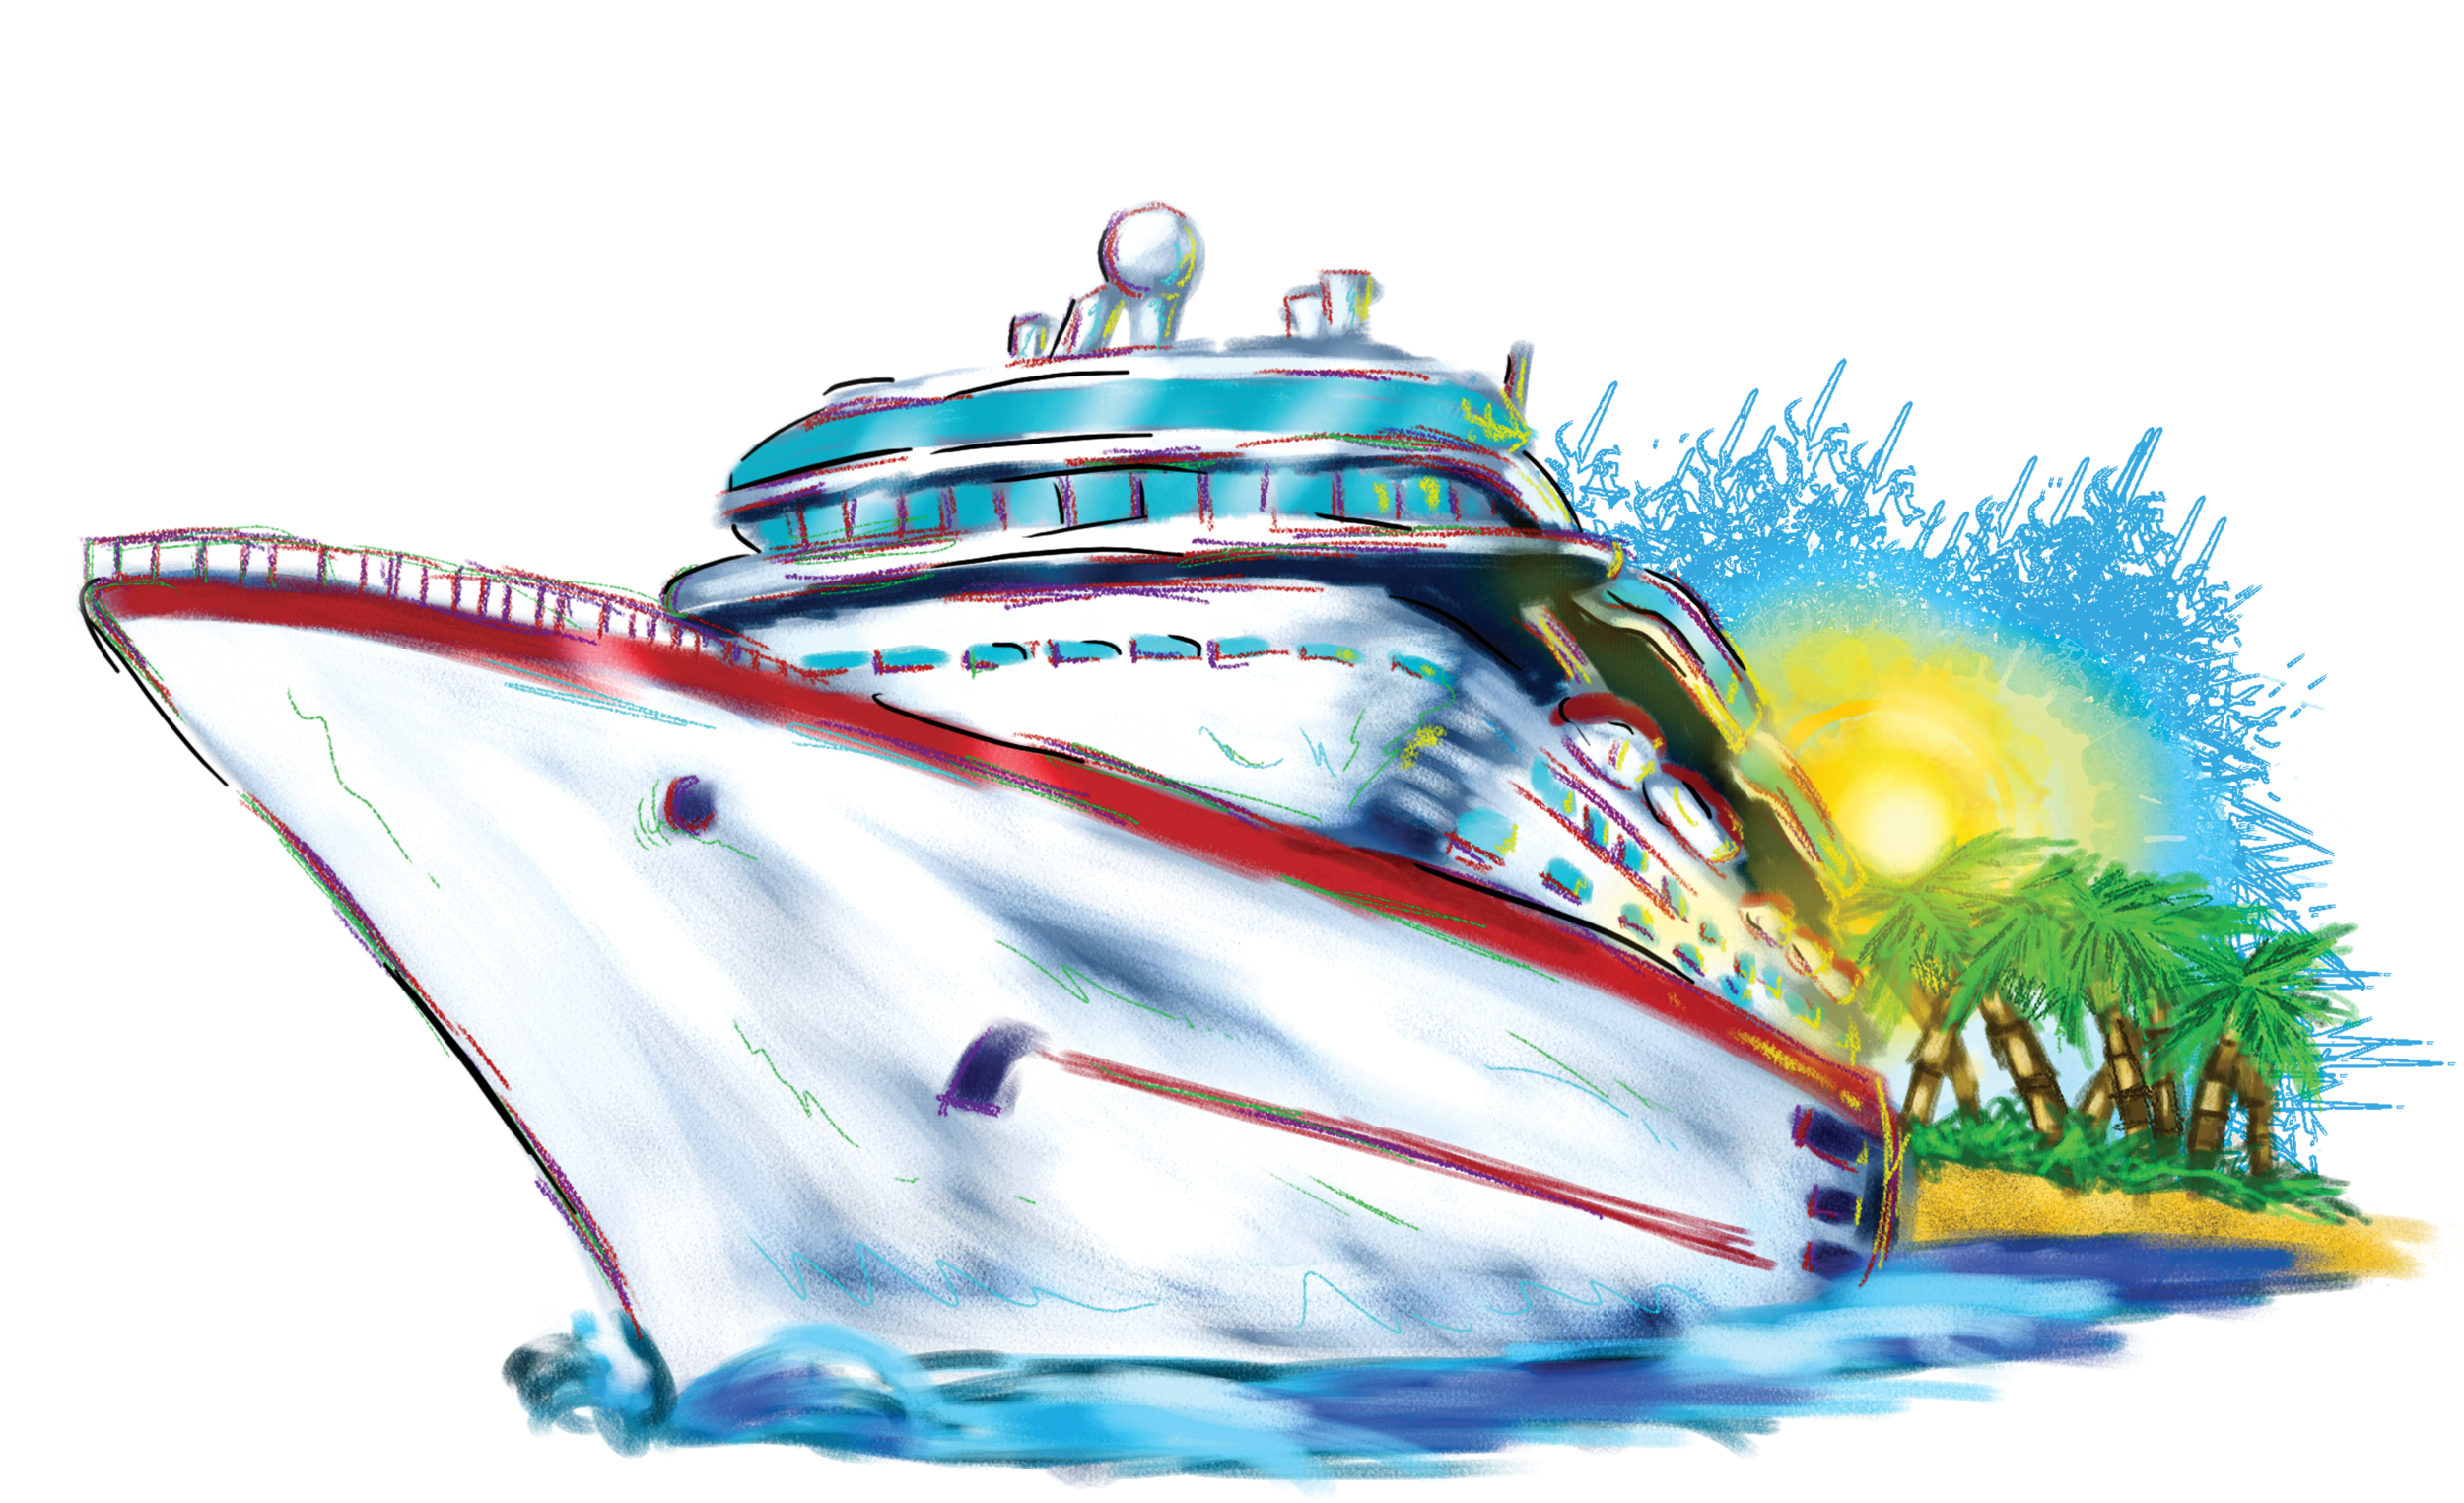 Cruise ship clipart #8